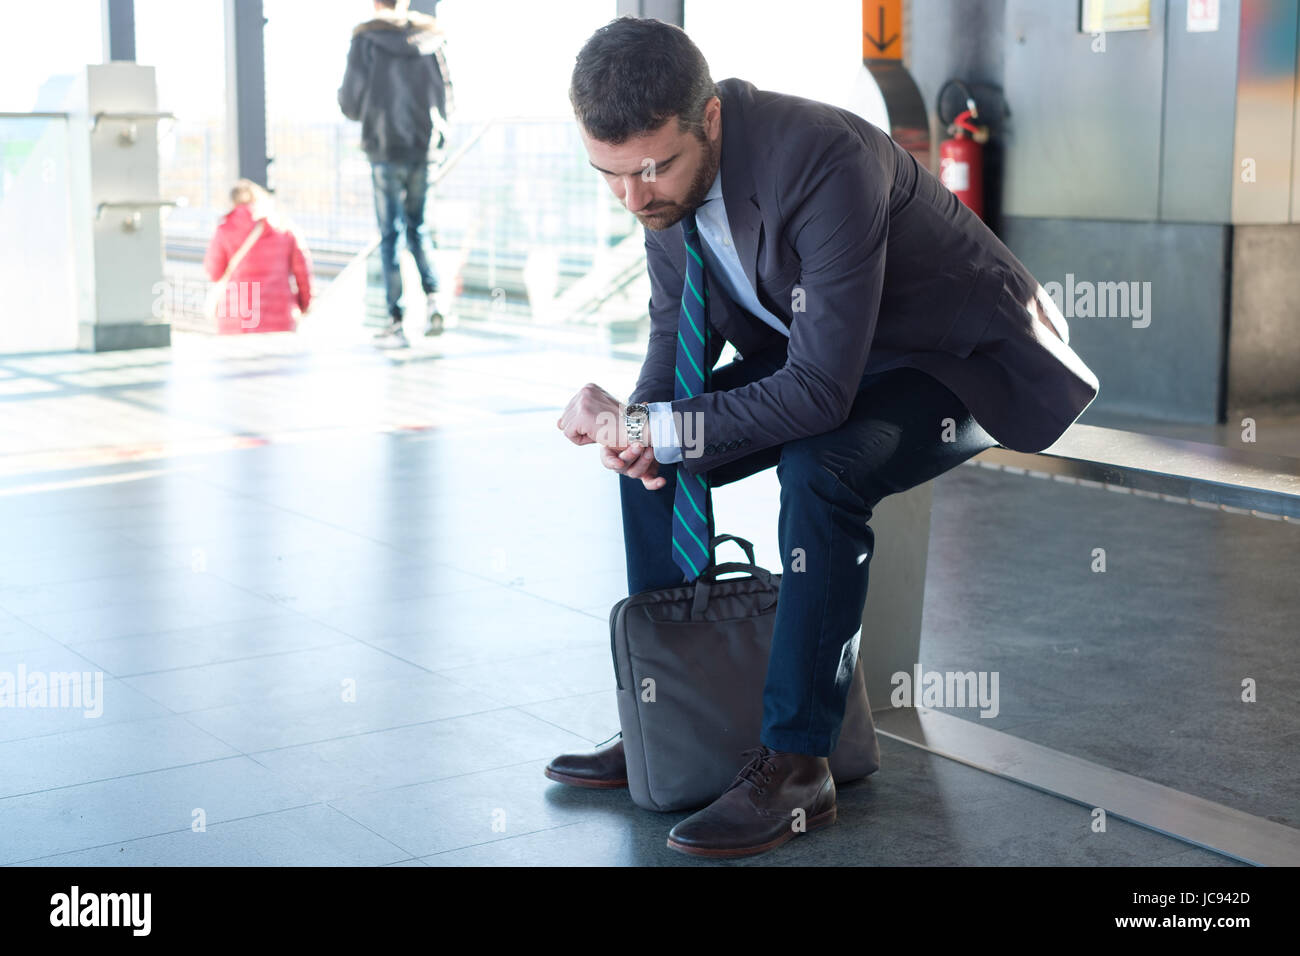 Tired businessman commuter is traveling and is waiting alone - Stock Image